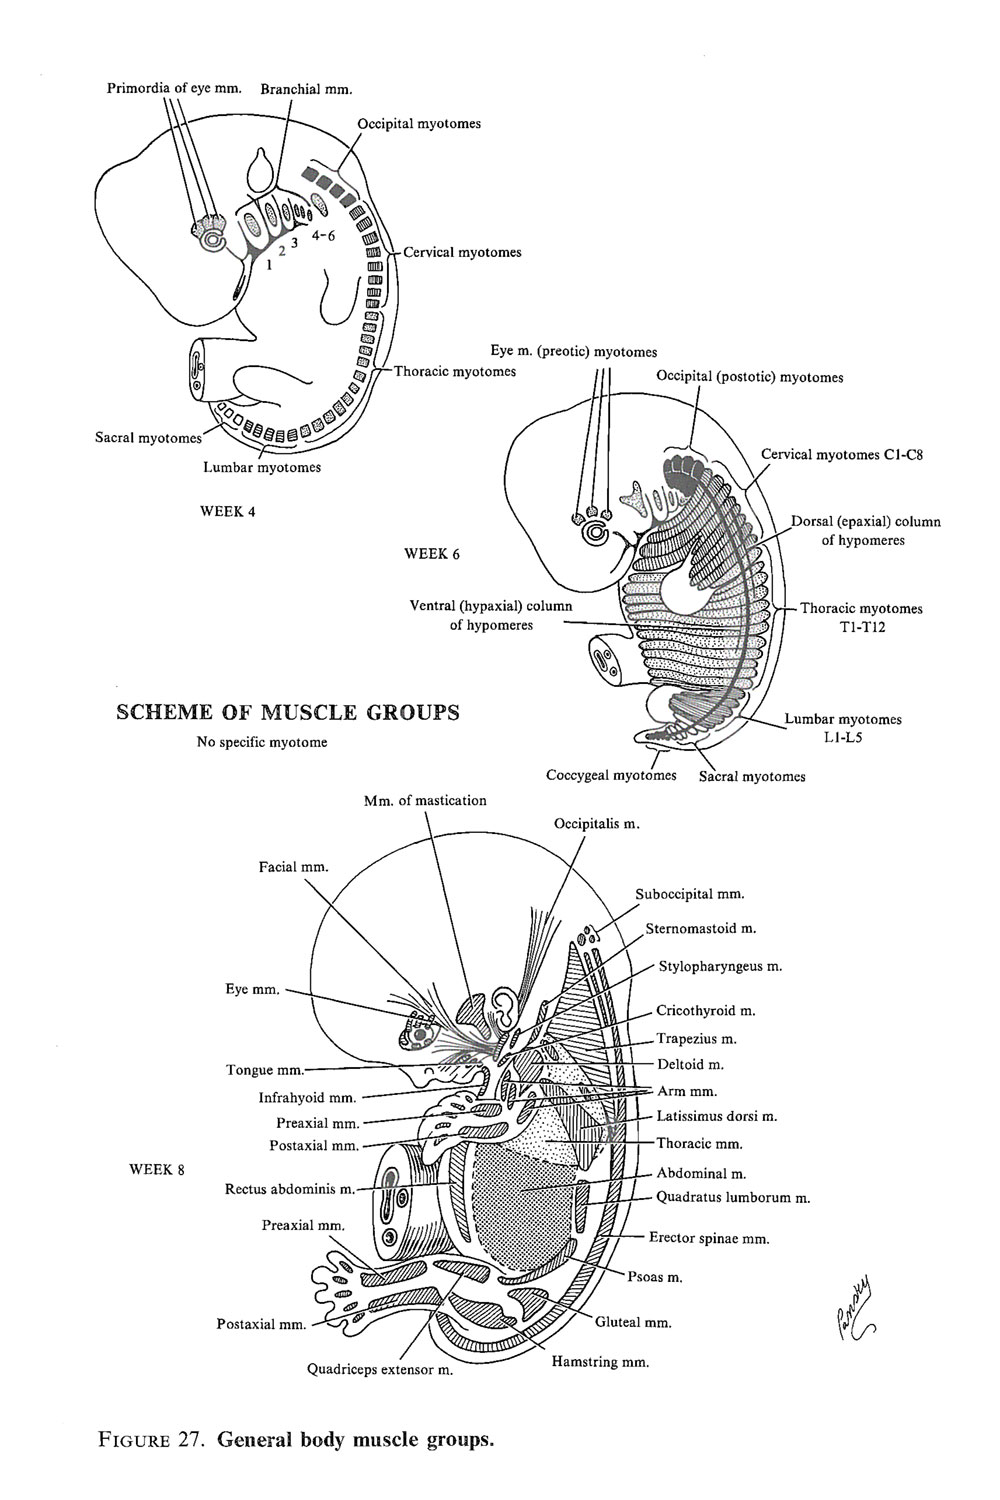 development of the muscular system: image #2